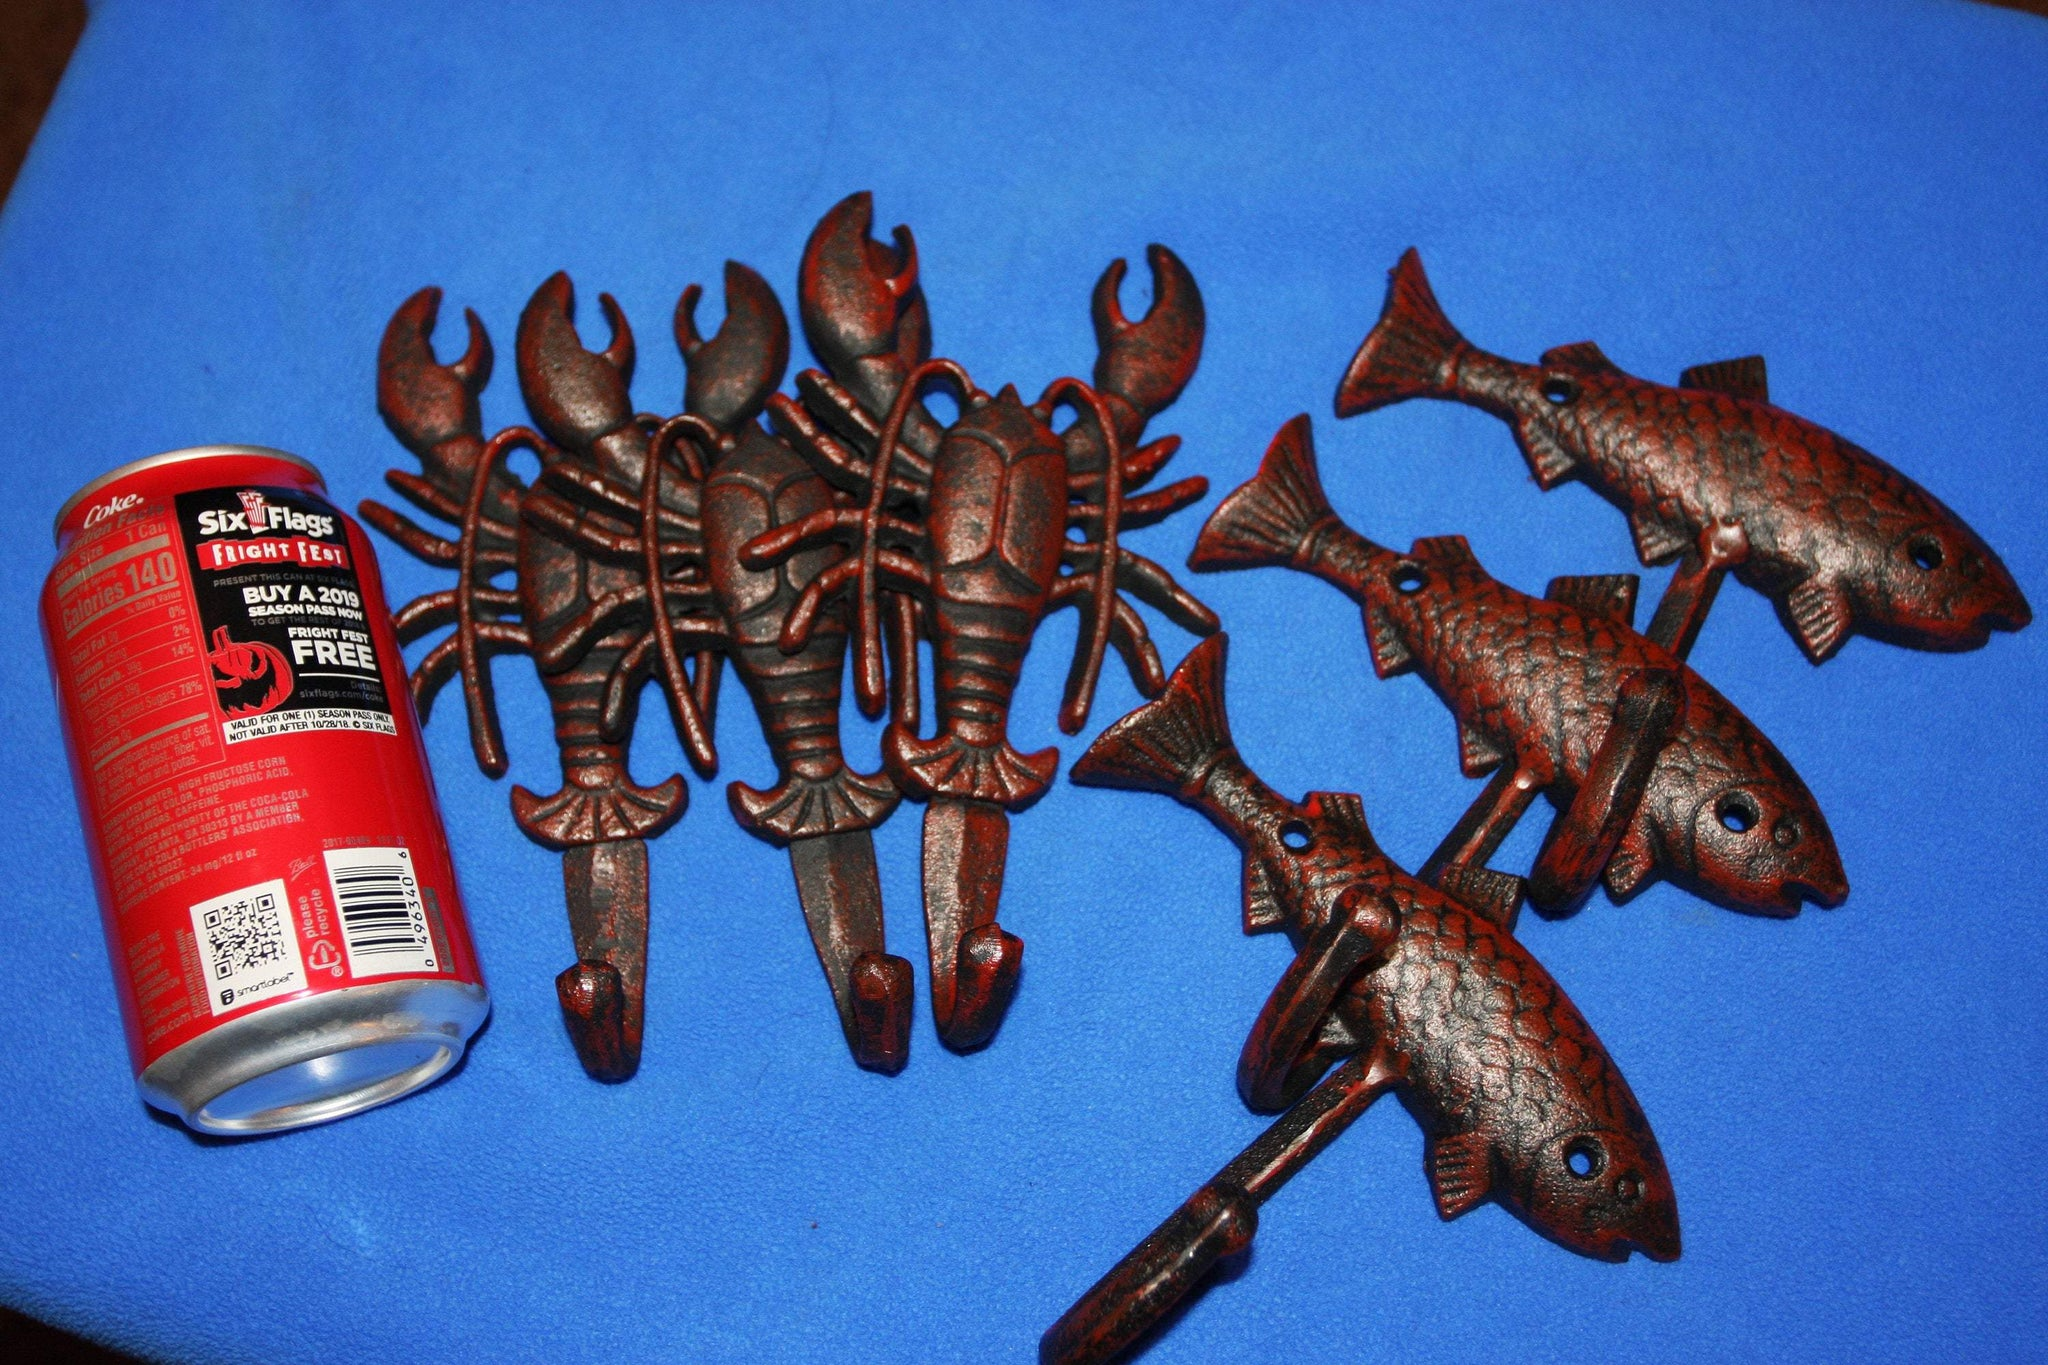 6) Cajun Kitchen Crawfish Towel Hooks Red Bronze Look Cast Iron, Redneck Lobster Mudbugs Redfish Towel Hooks